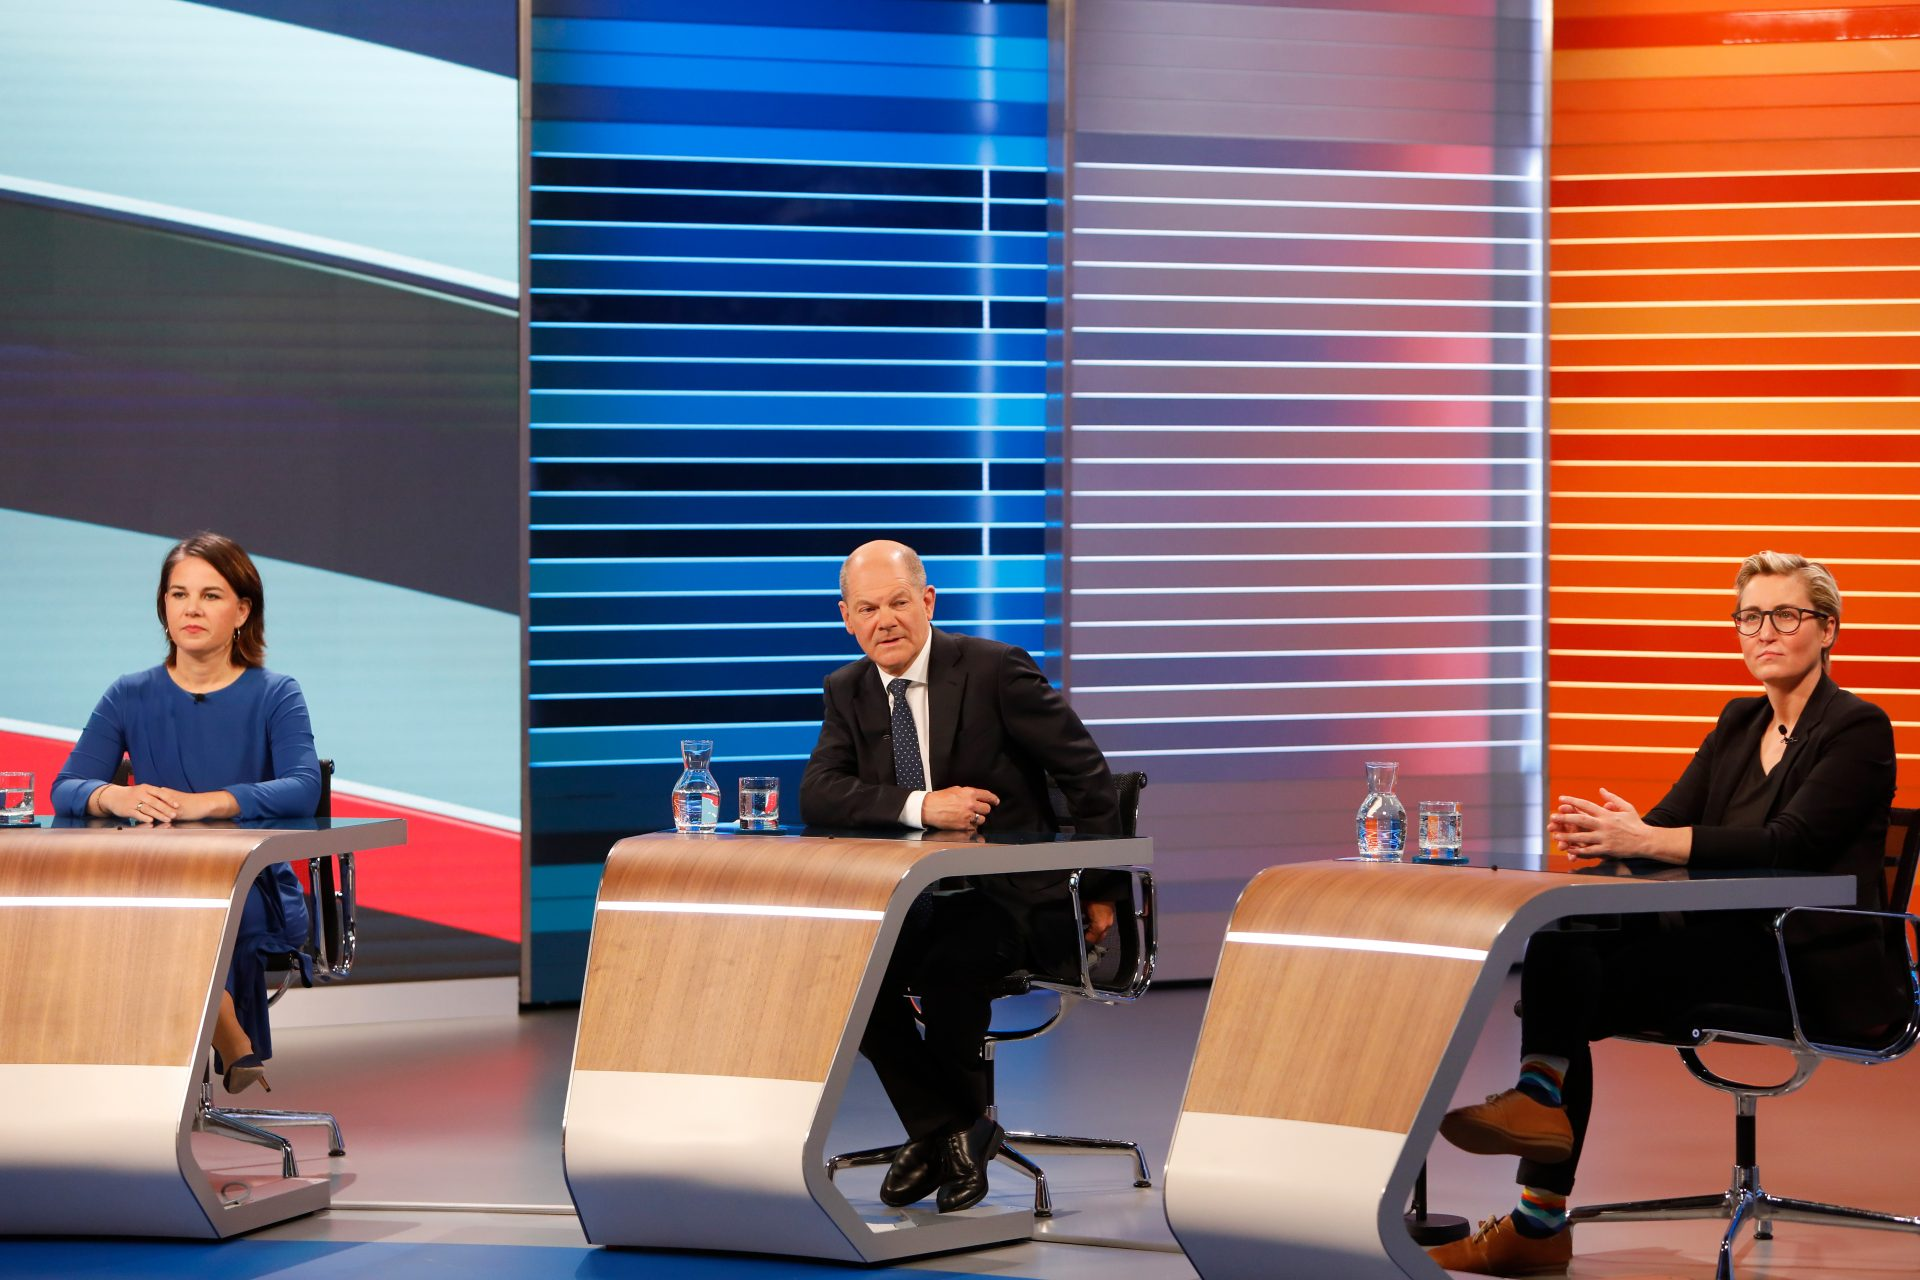 Annalena Baerbock, chancellor candidate of the German Greens Party, Olaf Scholz, chancellor candidate of the German Social Democrats (SPD) and Susanne Hennig-Wellsow (L-R), co-lead candidate of Die Linke are pictured ahead of a televised discussion at an ARD/ZDF studio following initial results. (Photo by Michele Tantussi/Getty Images)